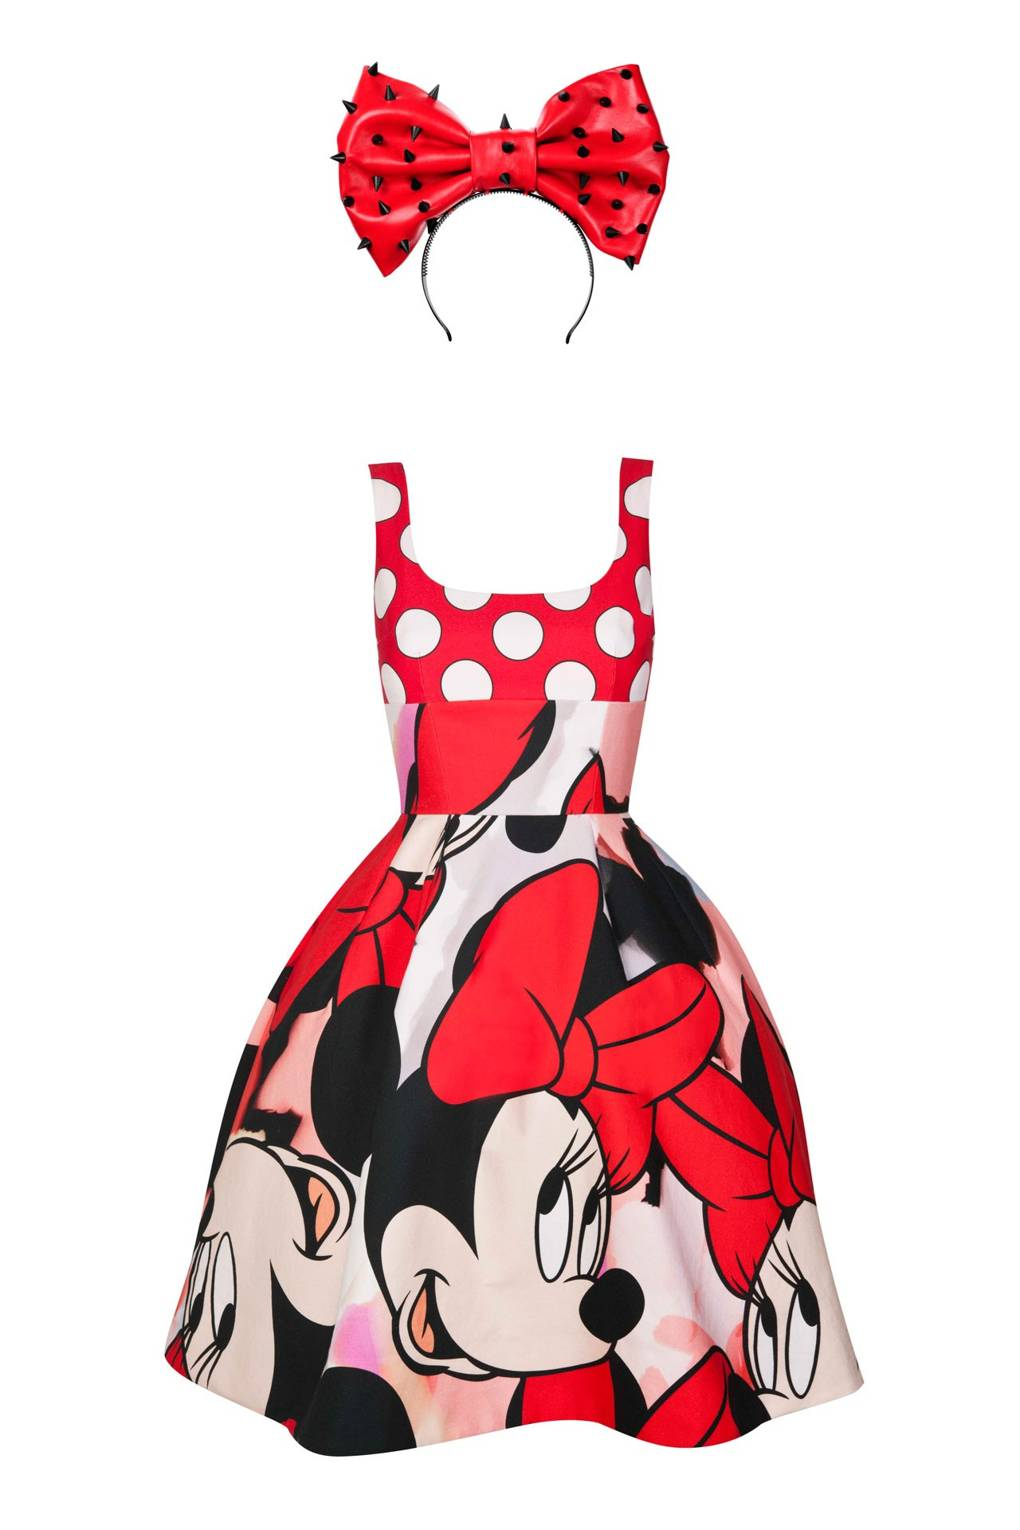 Minnie Mouse London Fashion Collection Pictures Unveiled | British Vogue